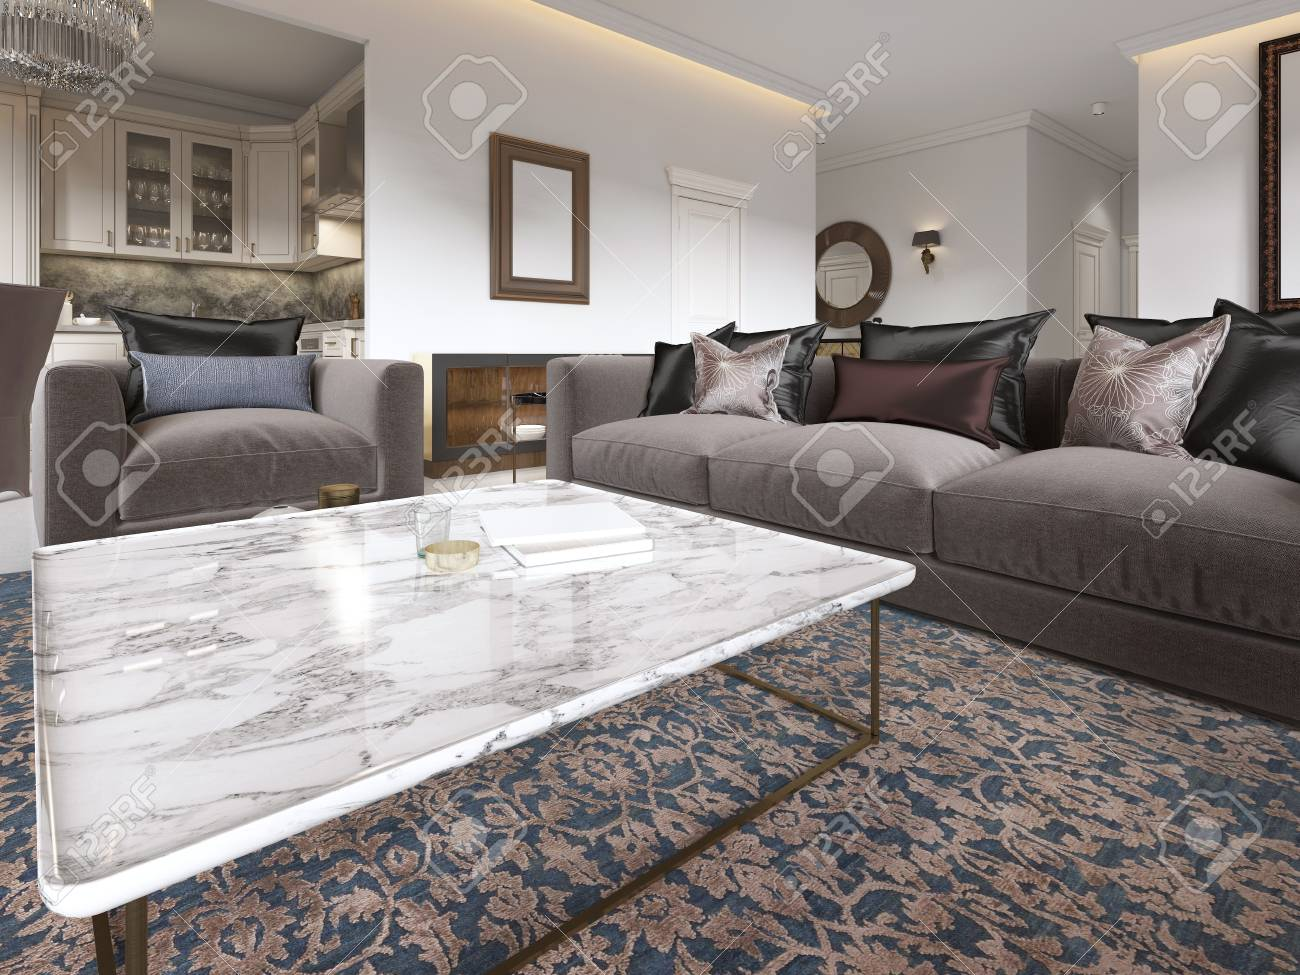 Modern Luxury Living Room Interior With A Sofa Armchairs A Stock Photo Picture And Royalty Free Image Image 113307613